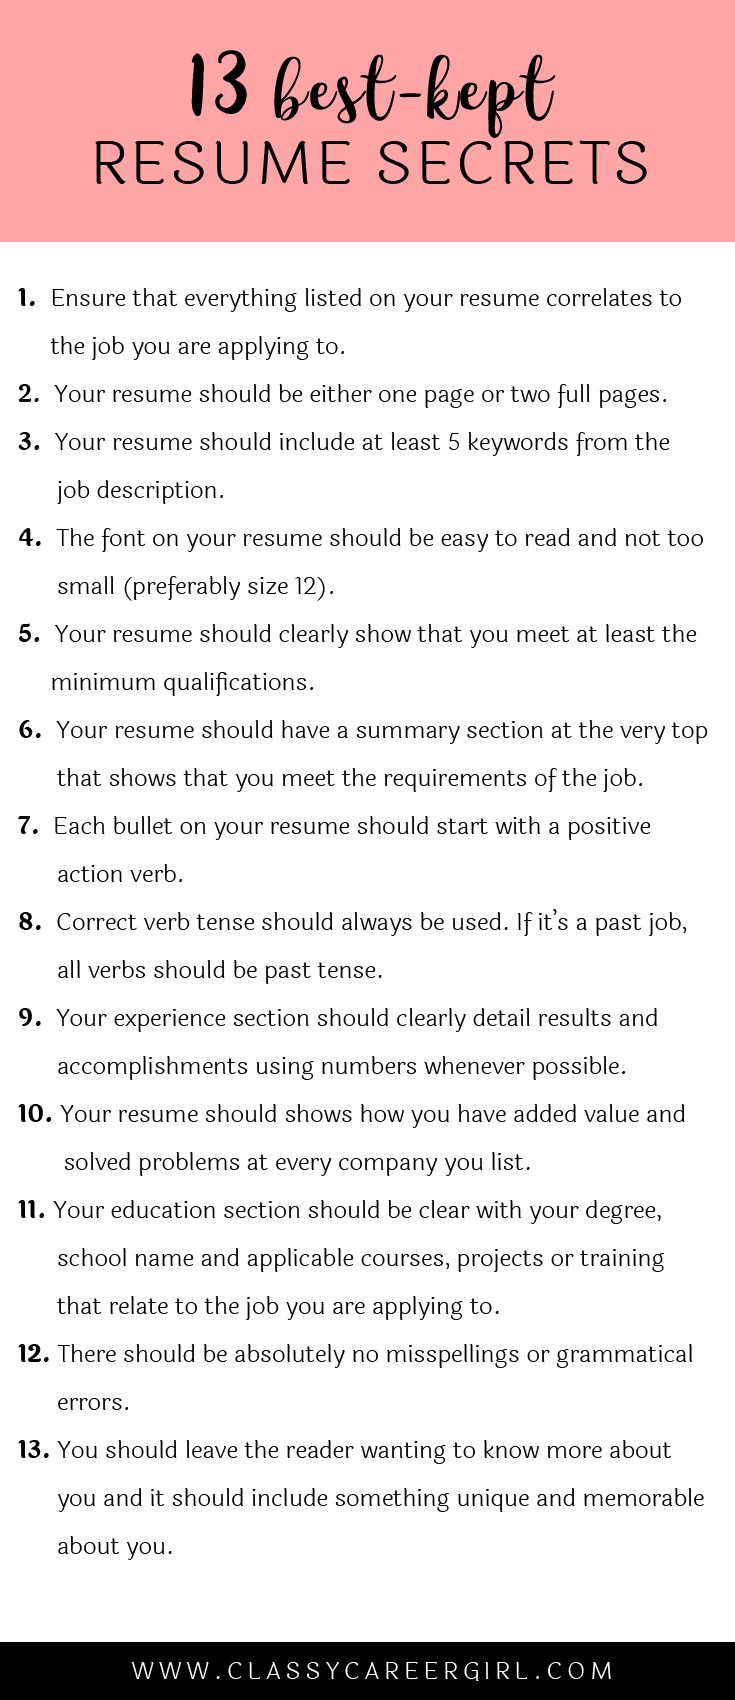 Picnictoimpeachus  Remarkable  Ideas About Resume On Pinterest  Cv Format Resume Cv And  With Exciting Some Hiring Managers Will Toss Your Resume Out If You Dont Know These  With Awesome Customer Service Resume Template Also Car Salesman Resume In Addition Objective Section Of Resume And Resume Structure As Well As Retail Resume Objective Additionally Standard Resume From Pinterestcom With Picnictoimpeachus  Exciting  Ideas About Resume On Pinterest  Cv Format Resume Cv And  With Awesome Some Hiring Managers Will Toss Your Resume Out If You Dont Know These  And Remarkable Customer Service Resume Template Also Car Salesman Resume In Addition Objective Section Of Resume From Pinterestcom